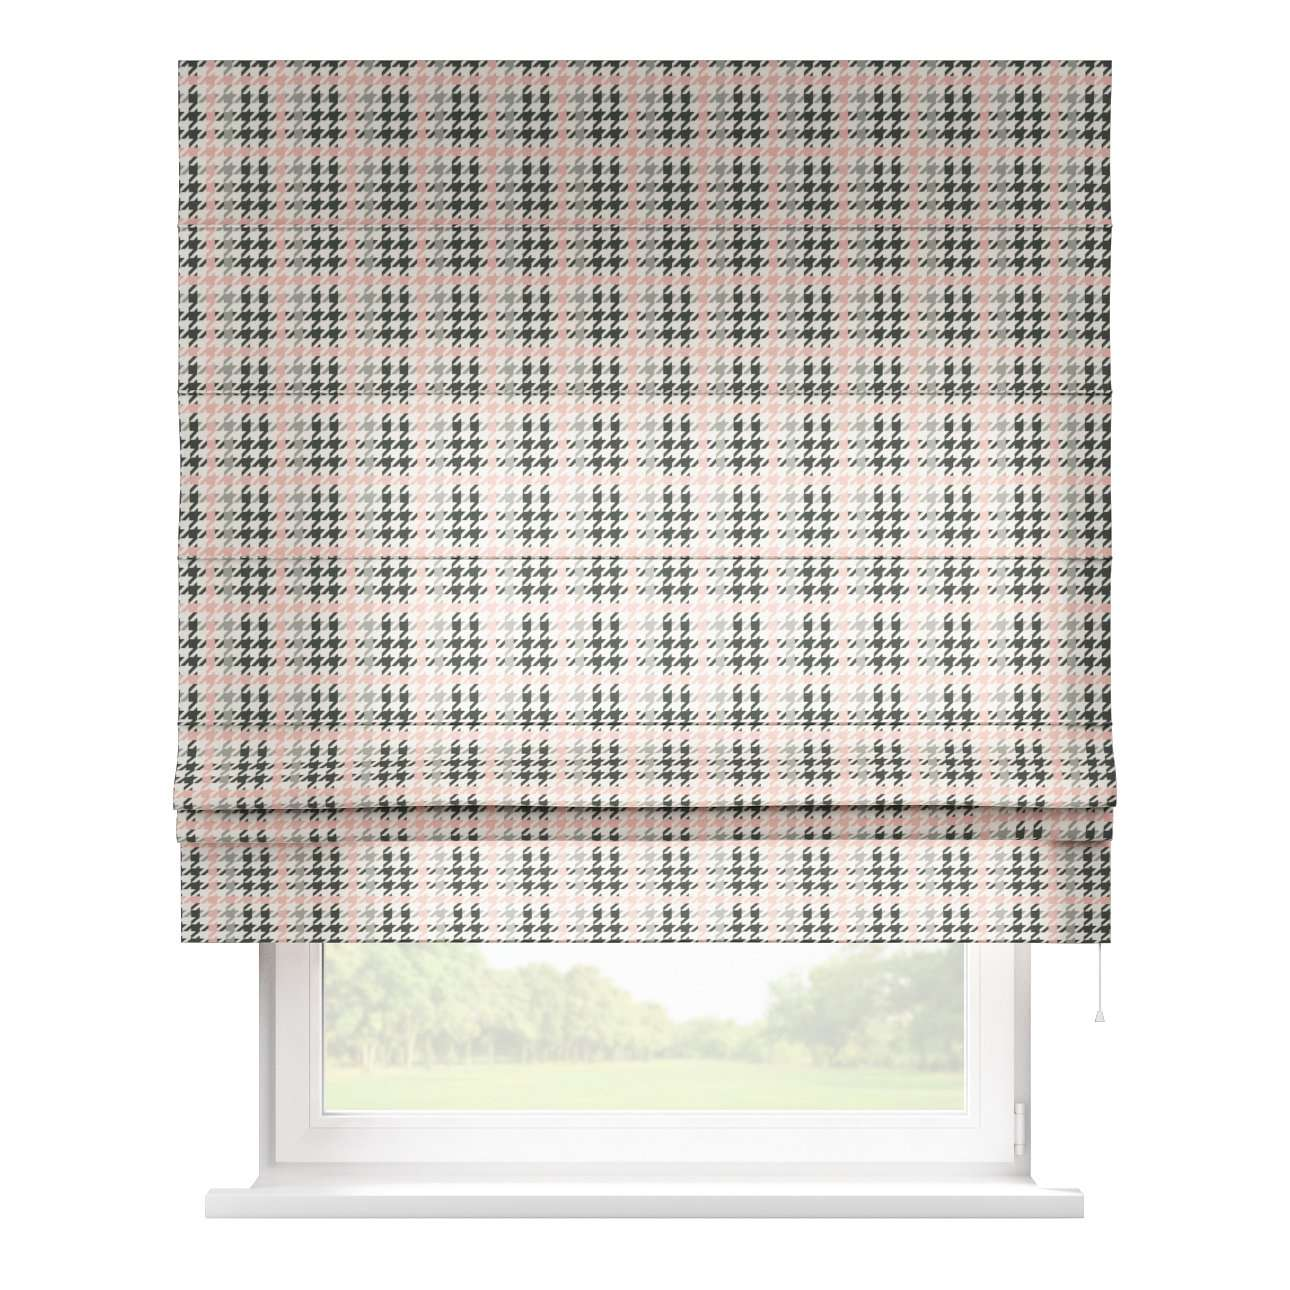 Padva roman blind  80 x 170 cm (31.5 x 67 inch) in collection Brooklyn, fabric: 137-75